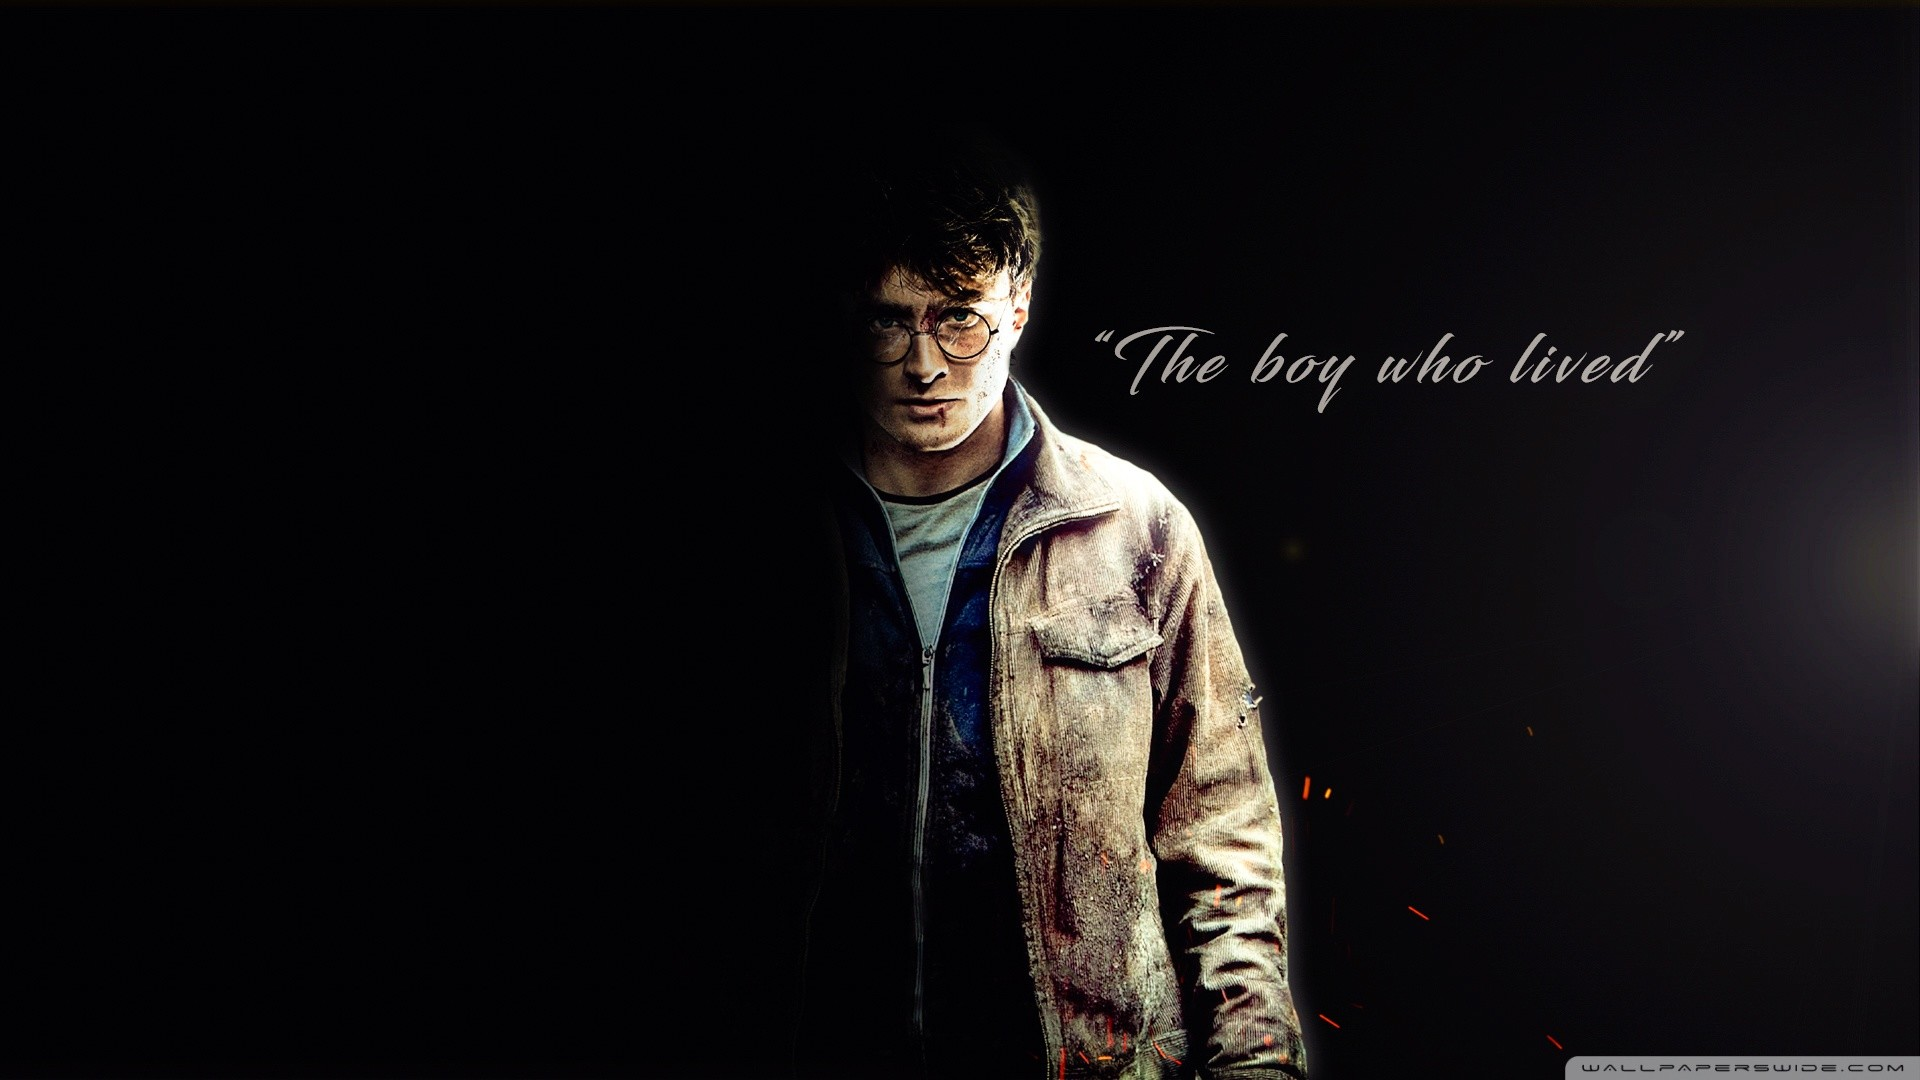 Harry Potter Quote Iphone Wallpaper Dobby Wallpaper 183 ①